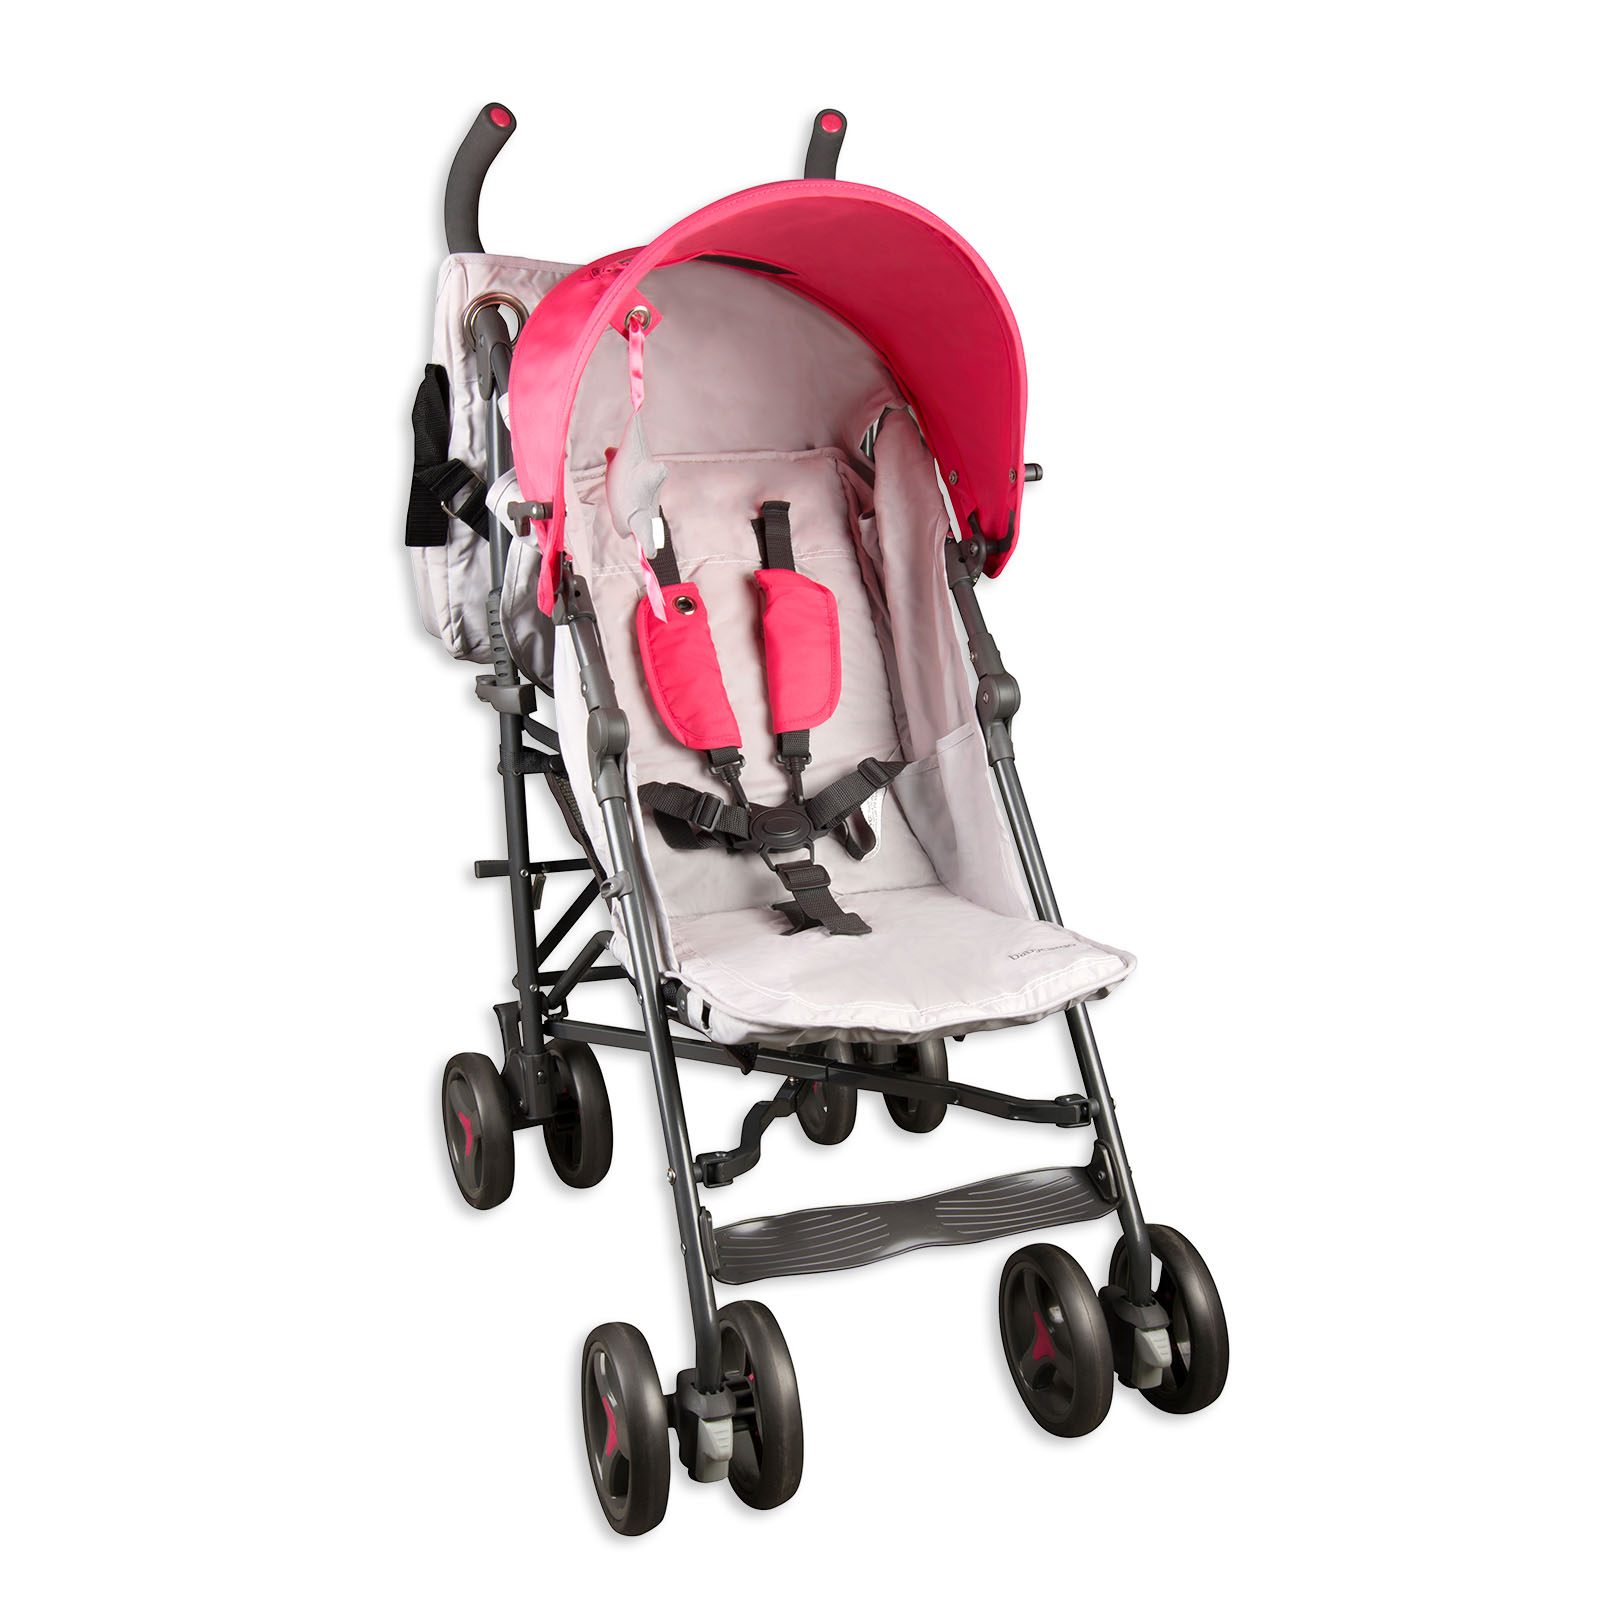 Baby Cargo Series 50 Deluxe Lite Baby Stroller (Pink/Gray) BBC-50SERIES-PK-A1